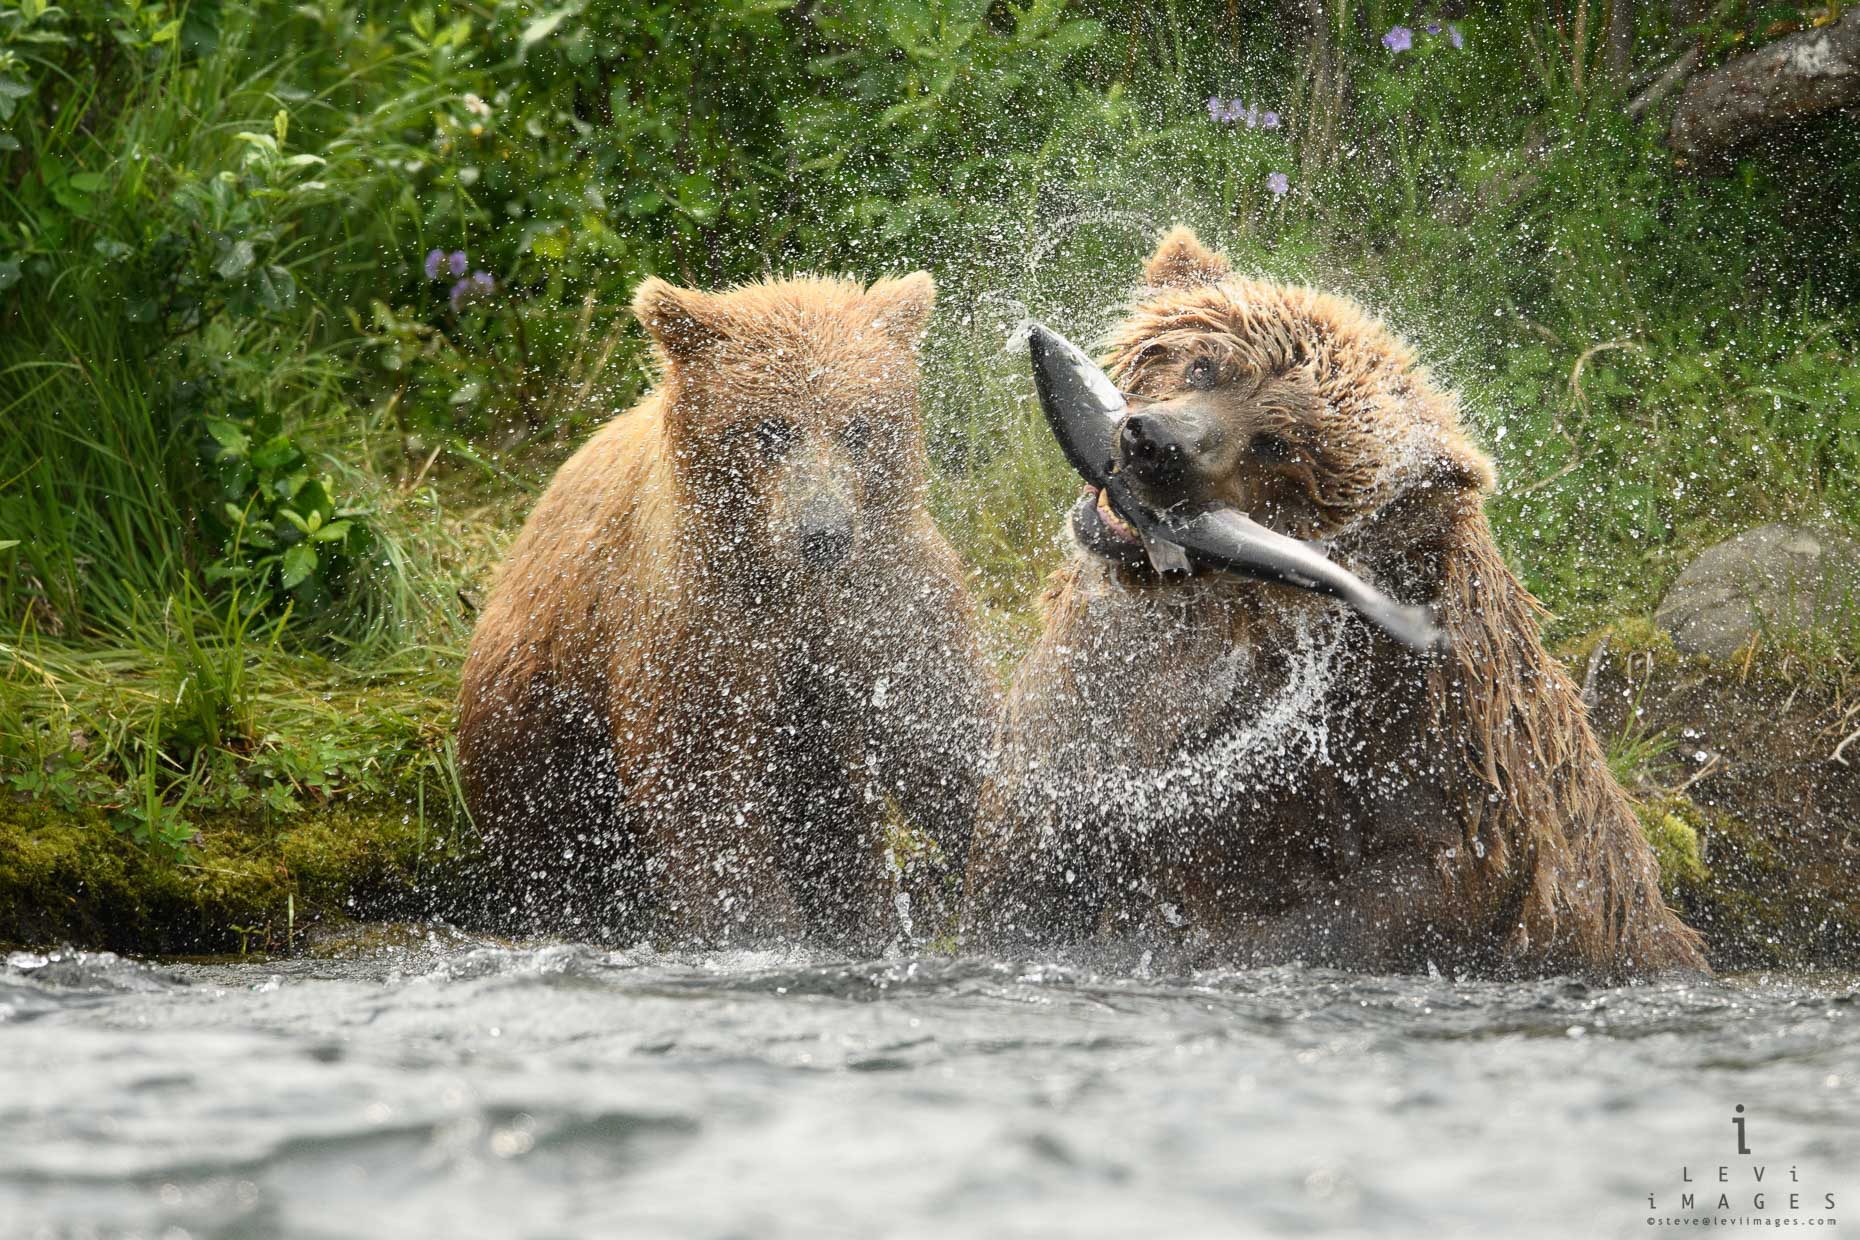 Mother brown bear (Ursus arctos) with fish shaking while cub looks on. Katmai Alaska